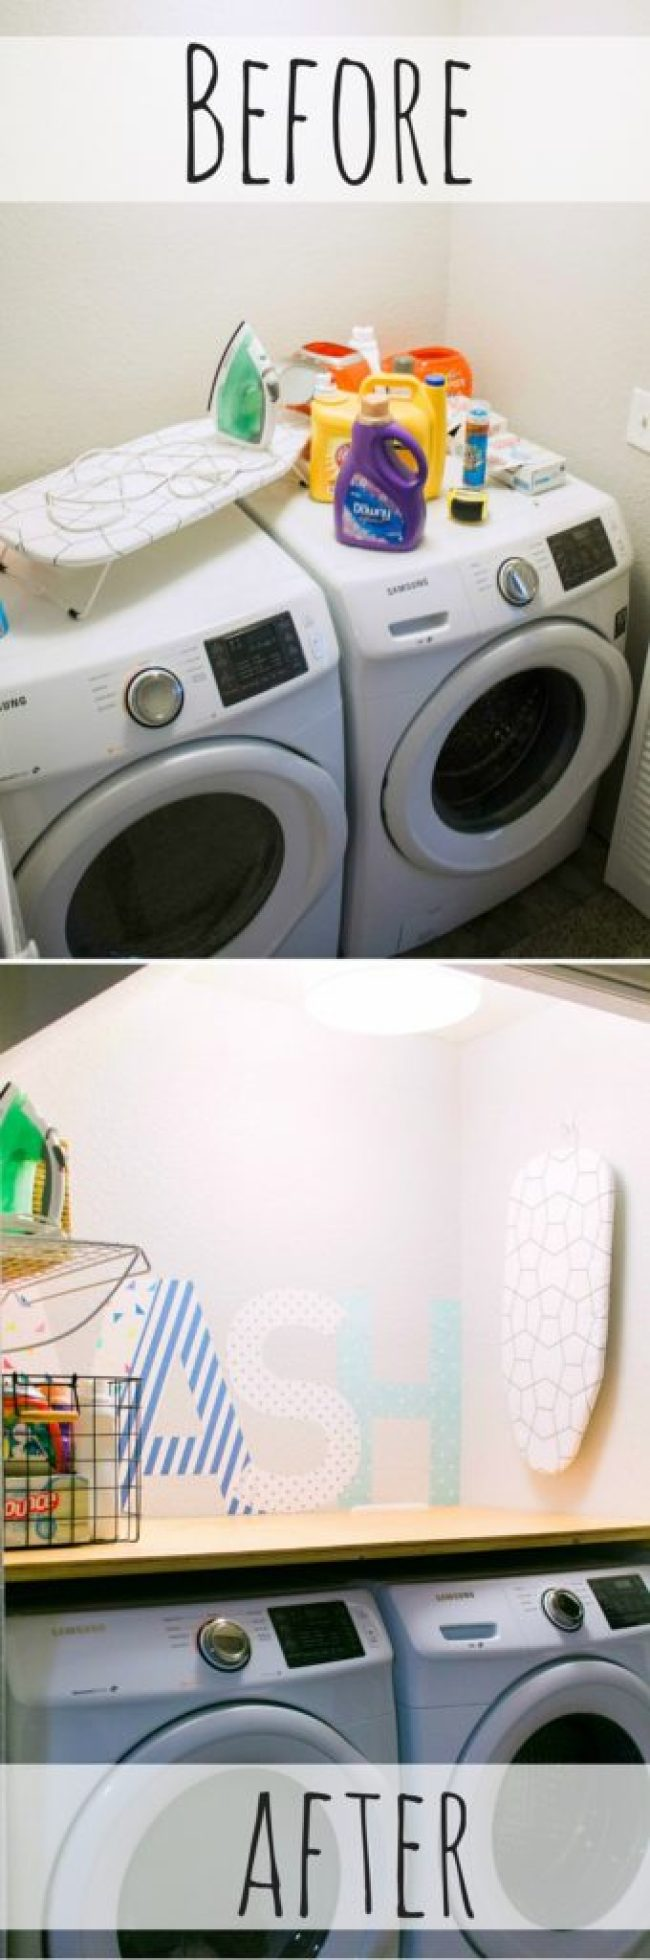 Our Tiny Laundry Room Reveal - You don't need to have a huge space to have a practical and beautiful laundry room! I love this closet laundry room! What a great use of a small space. Great idea for small laundry rooms!